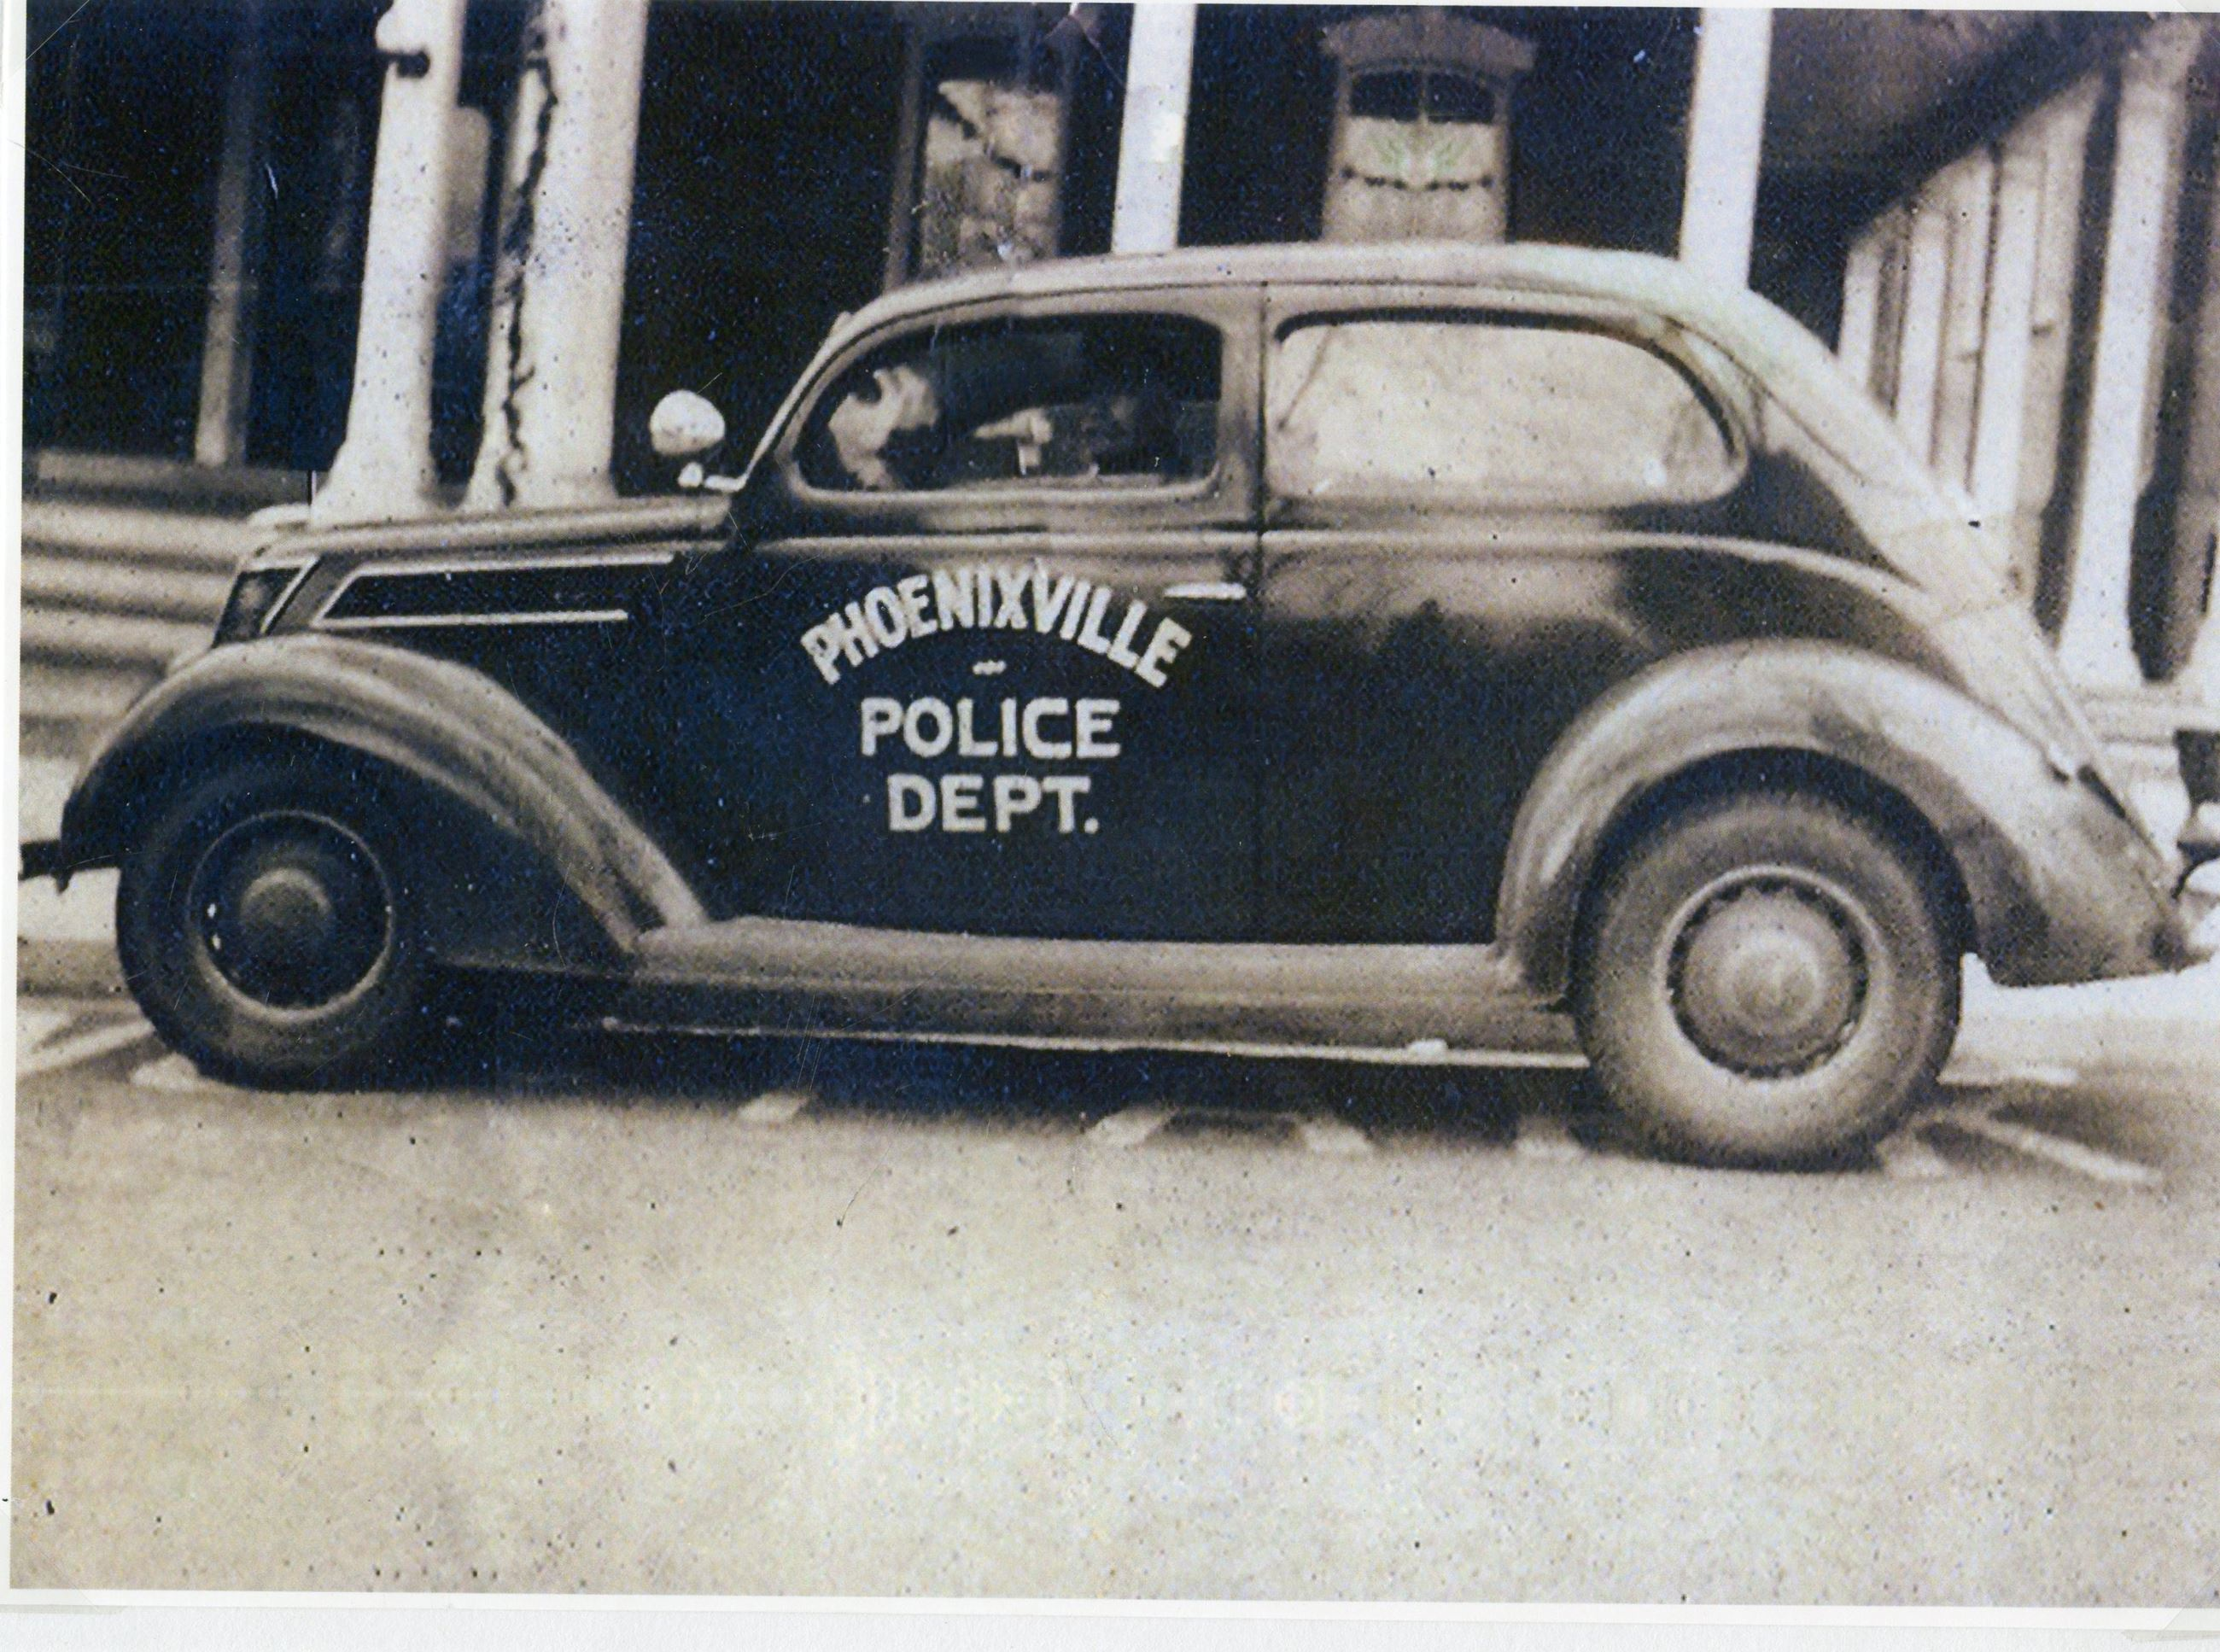 Early Phoenixville Police Departent vehicle